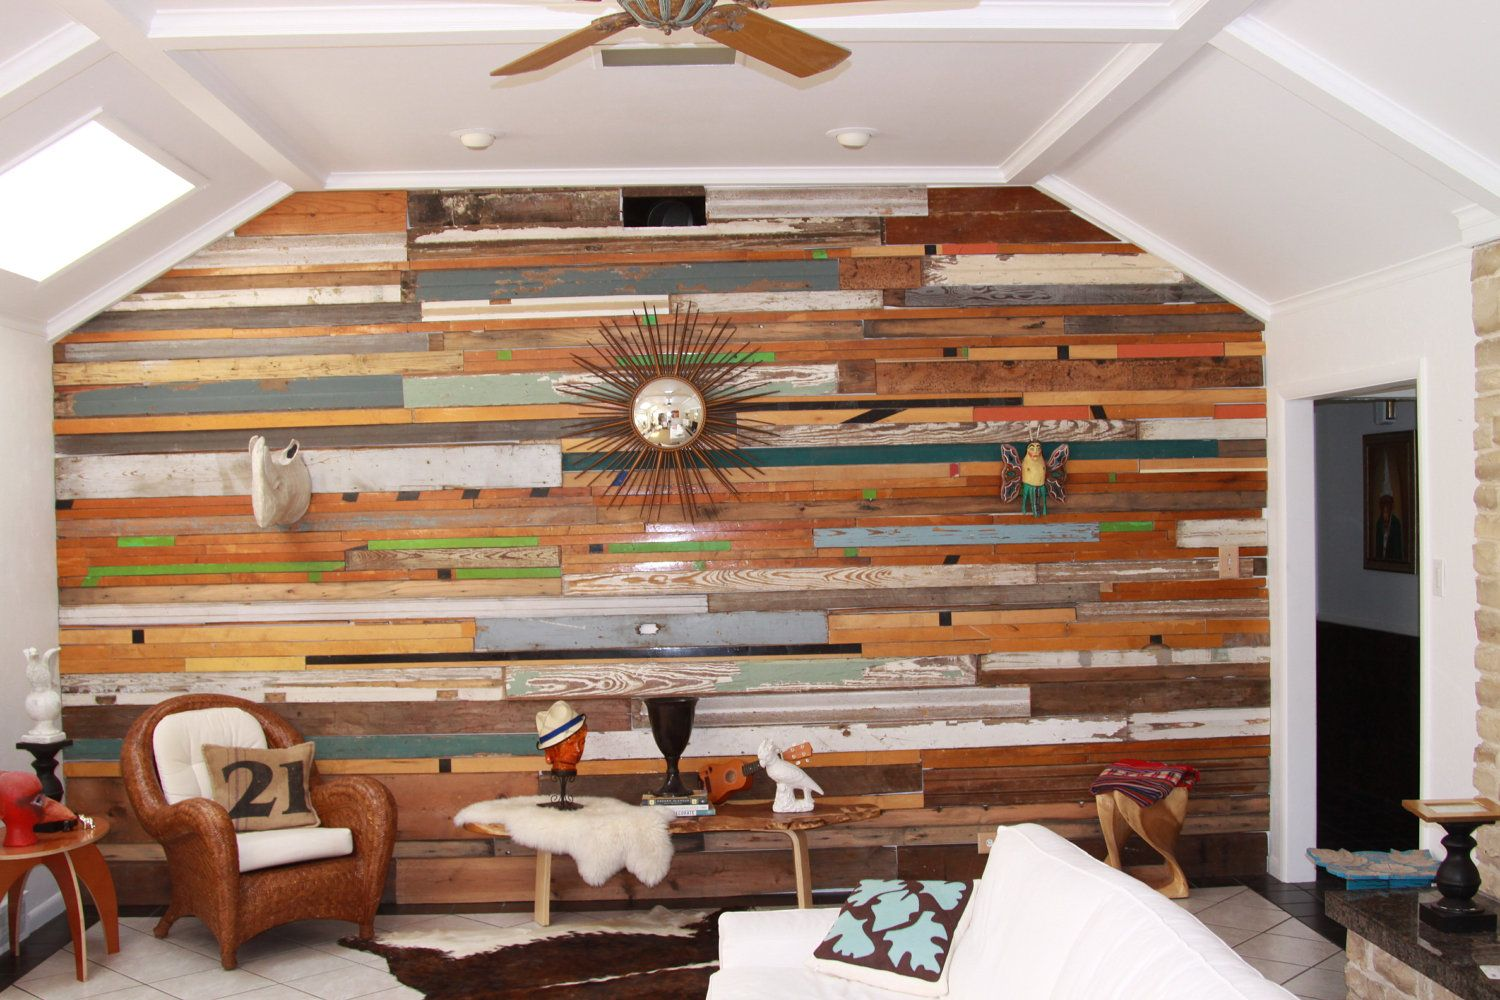 Wood Paneling With A History: Reclaimed Wood For Interiors